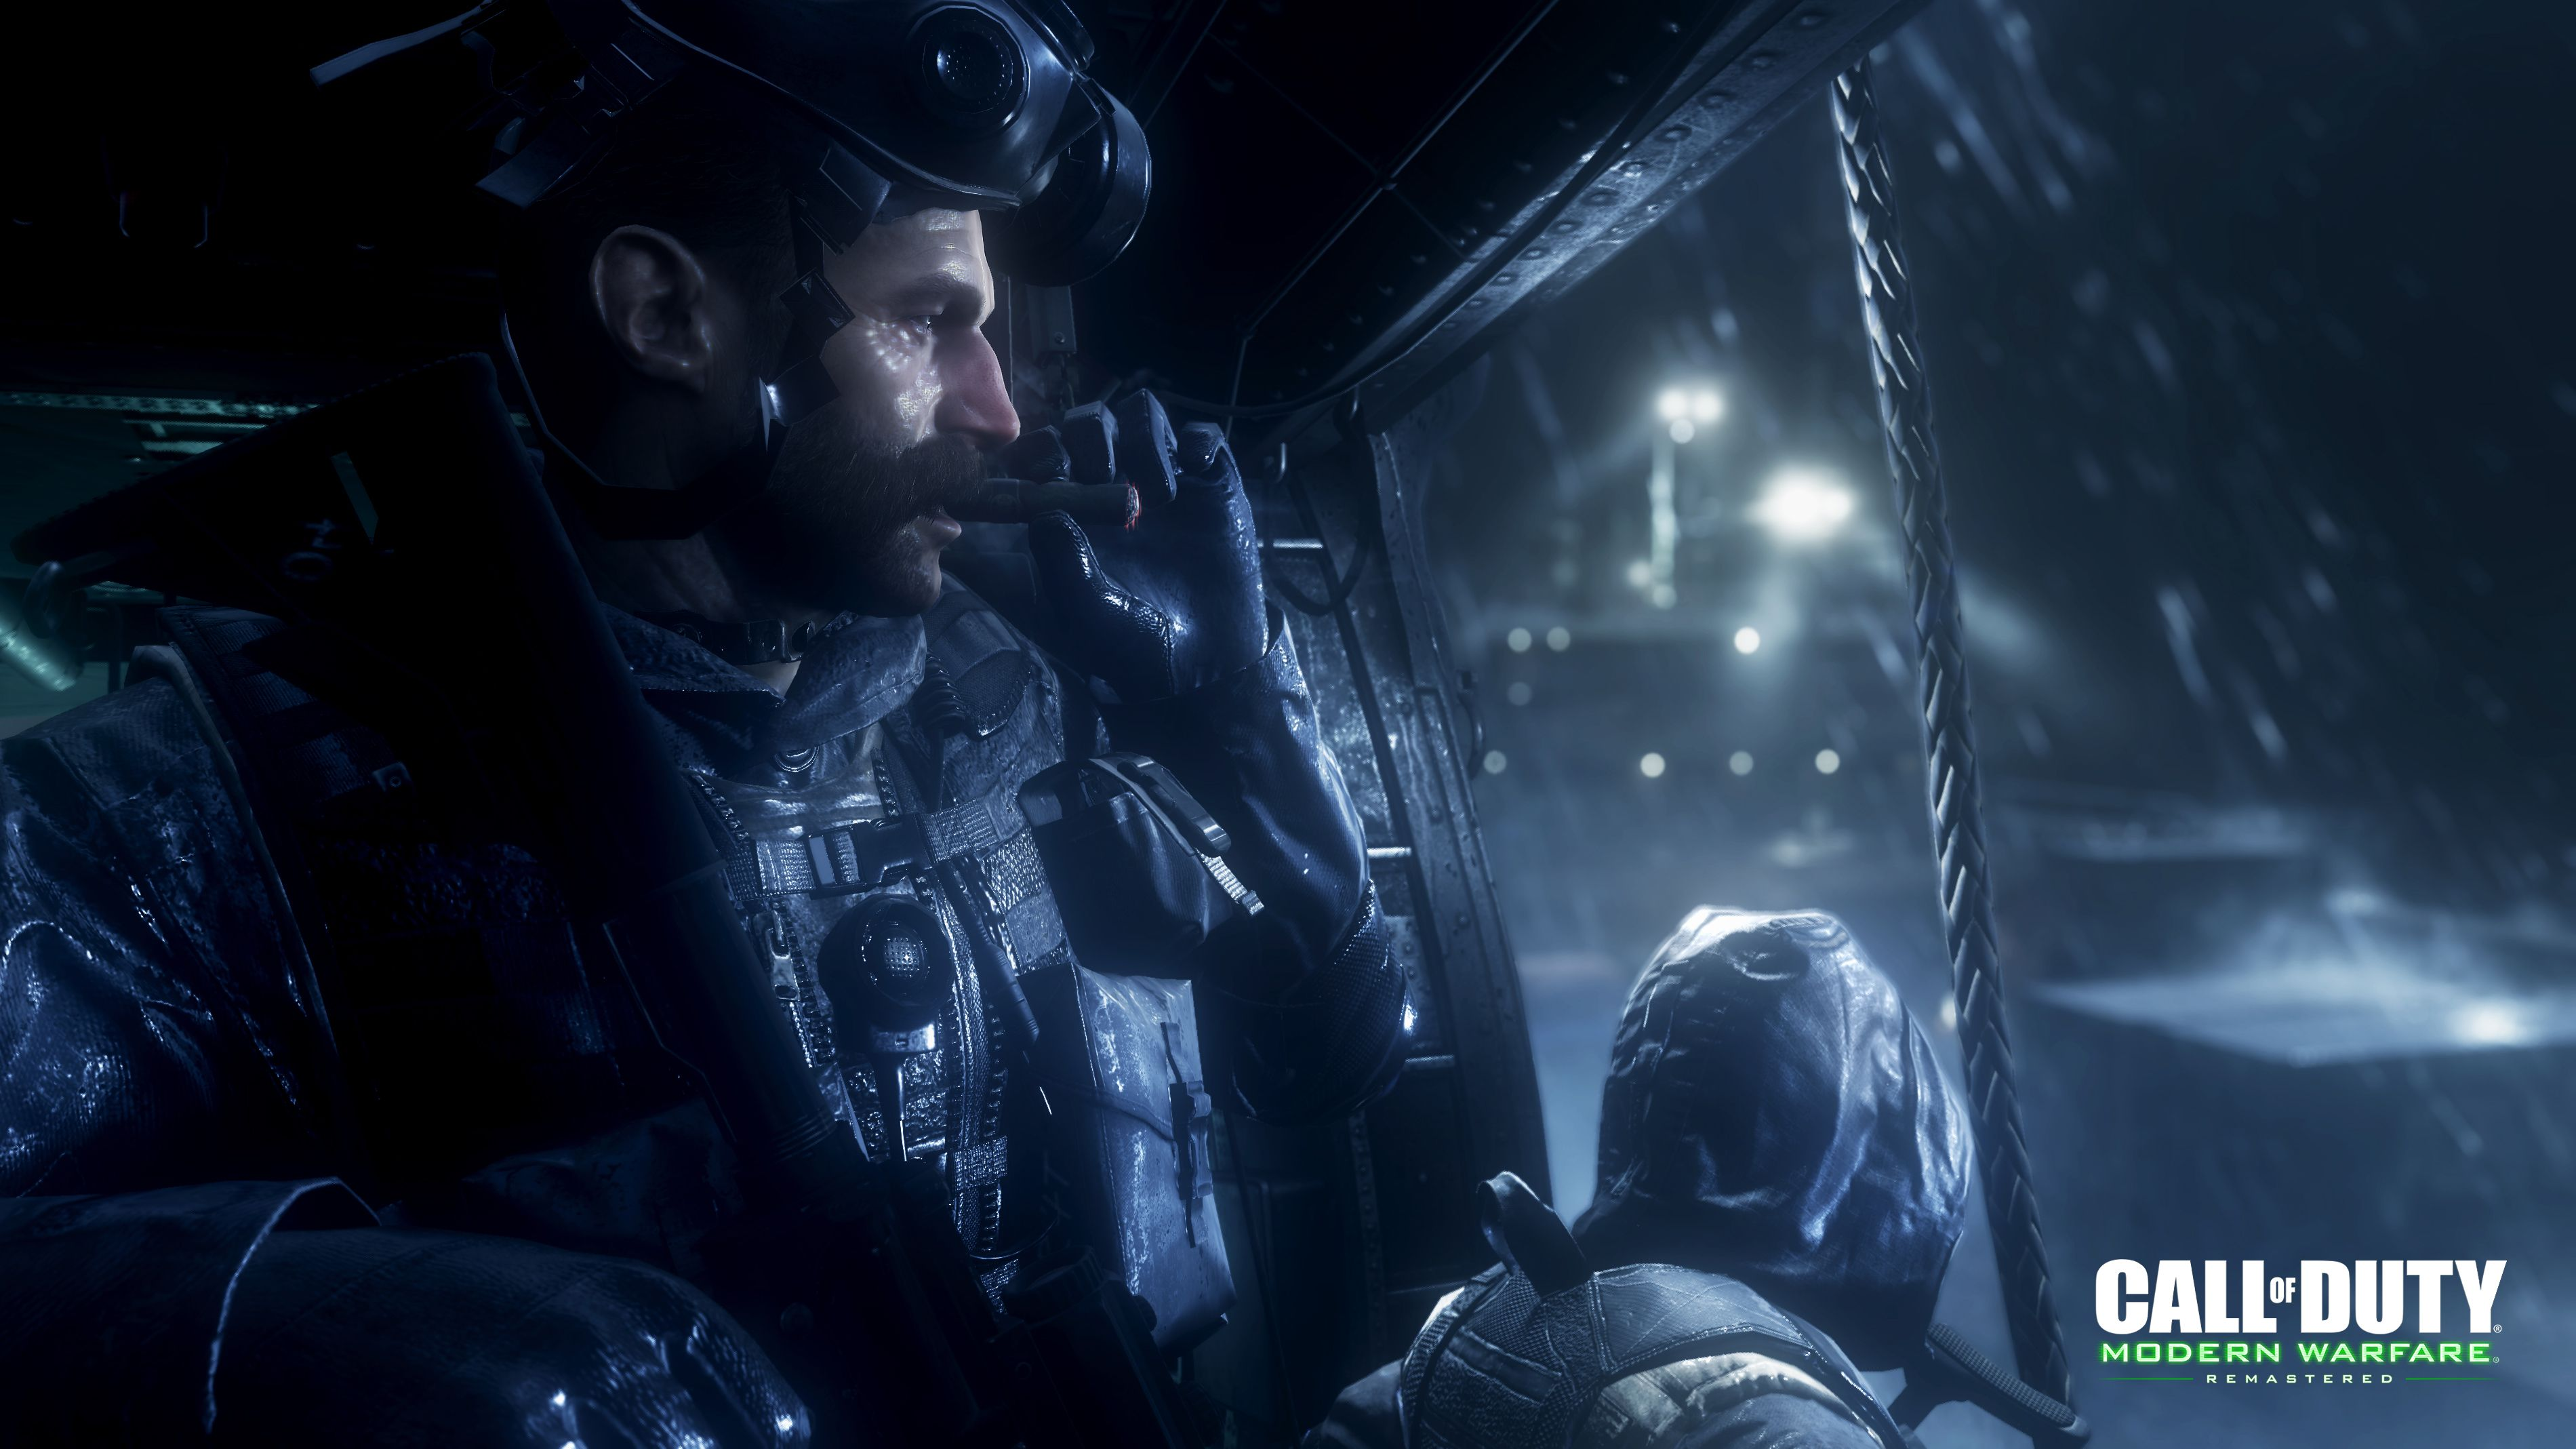 Call Of Duty Modern Warfare Remastered Full HD Wallpaper And